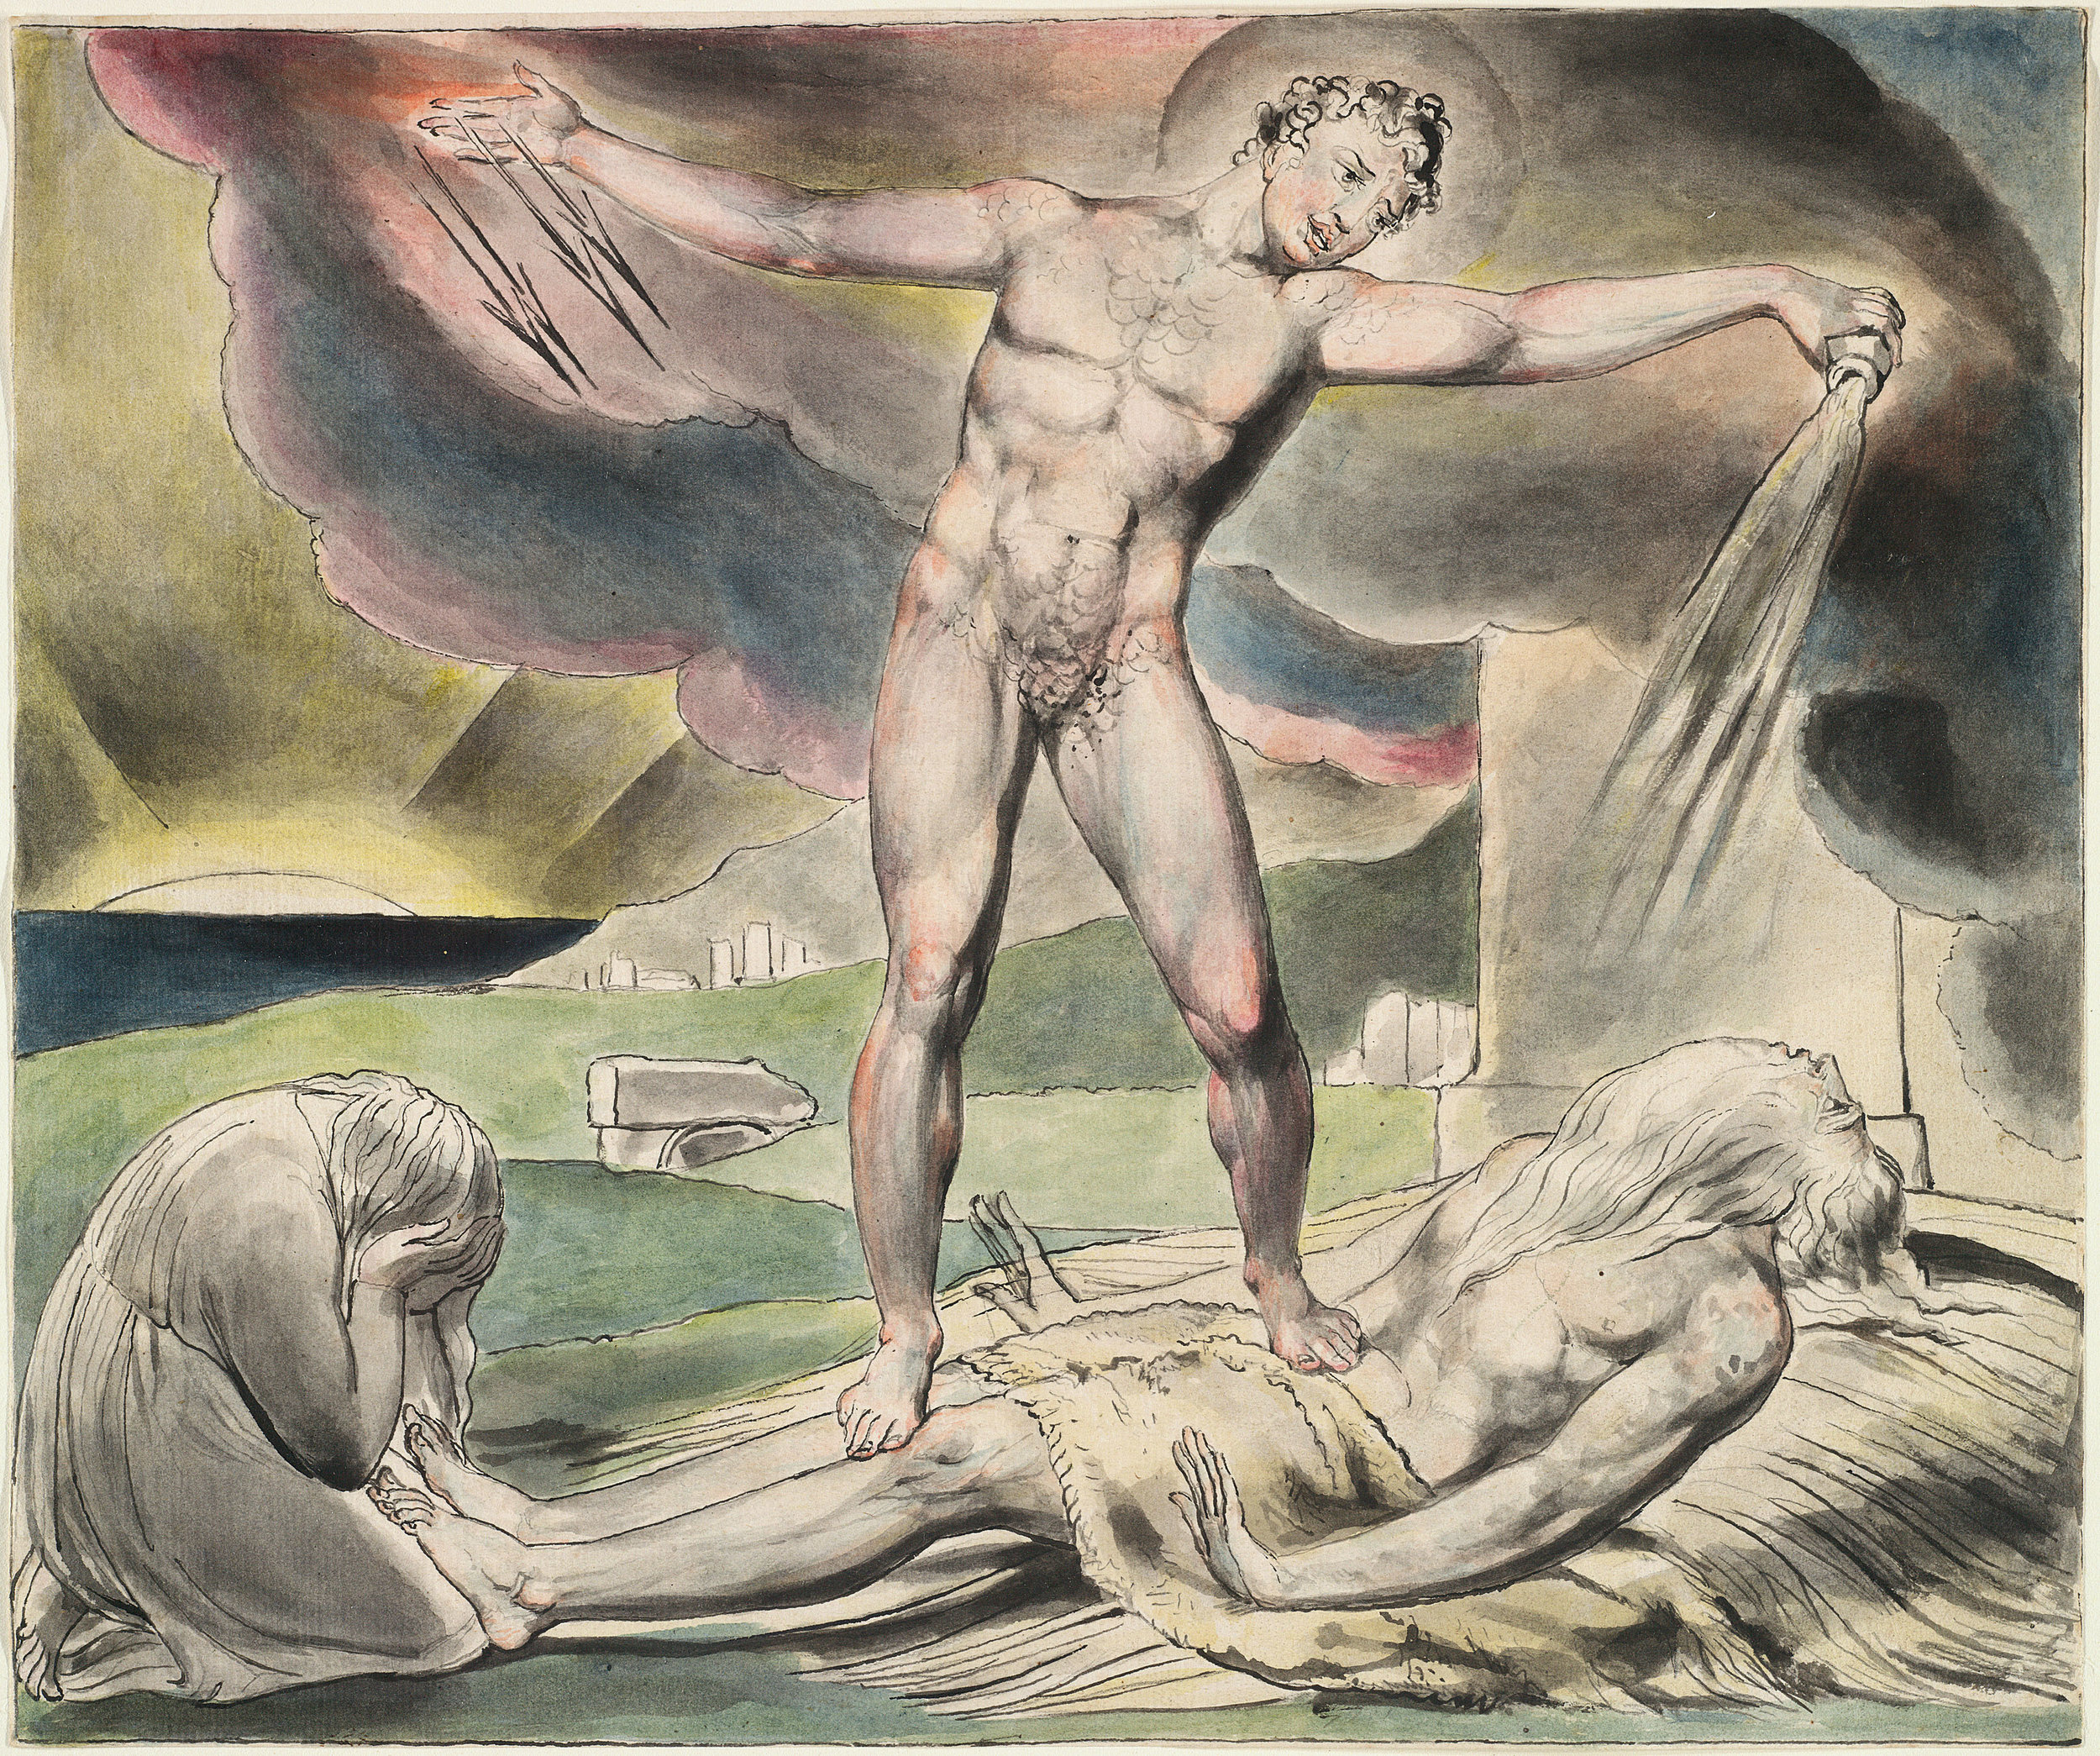 Satan inflicts boils on Job, by William Blake